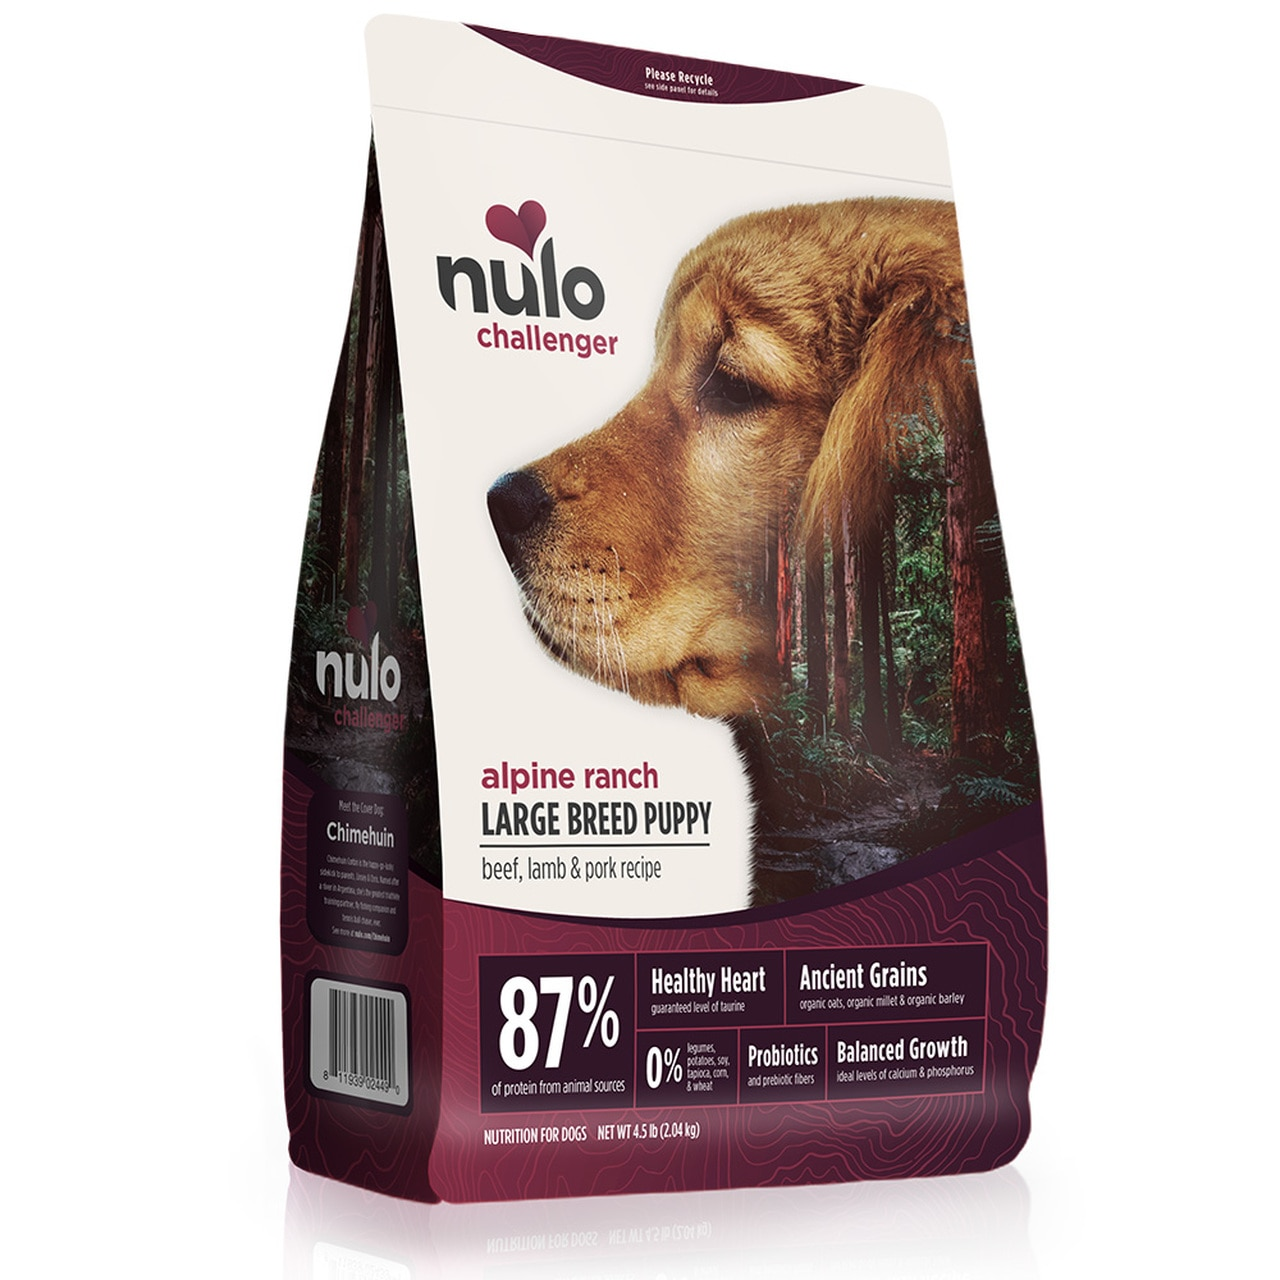 Nulo Challenger Alpine Ranch Beef, Lamb & Pork Large Breed Puppy Food Image